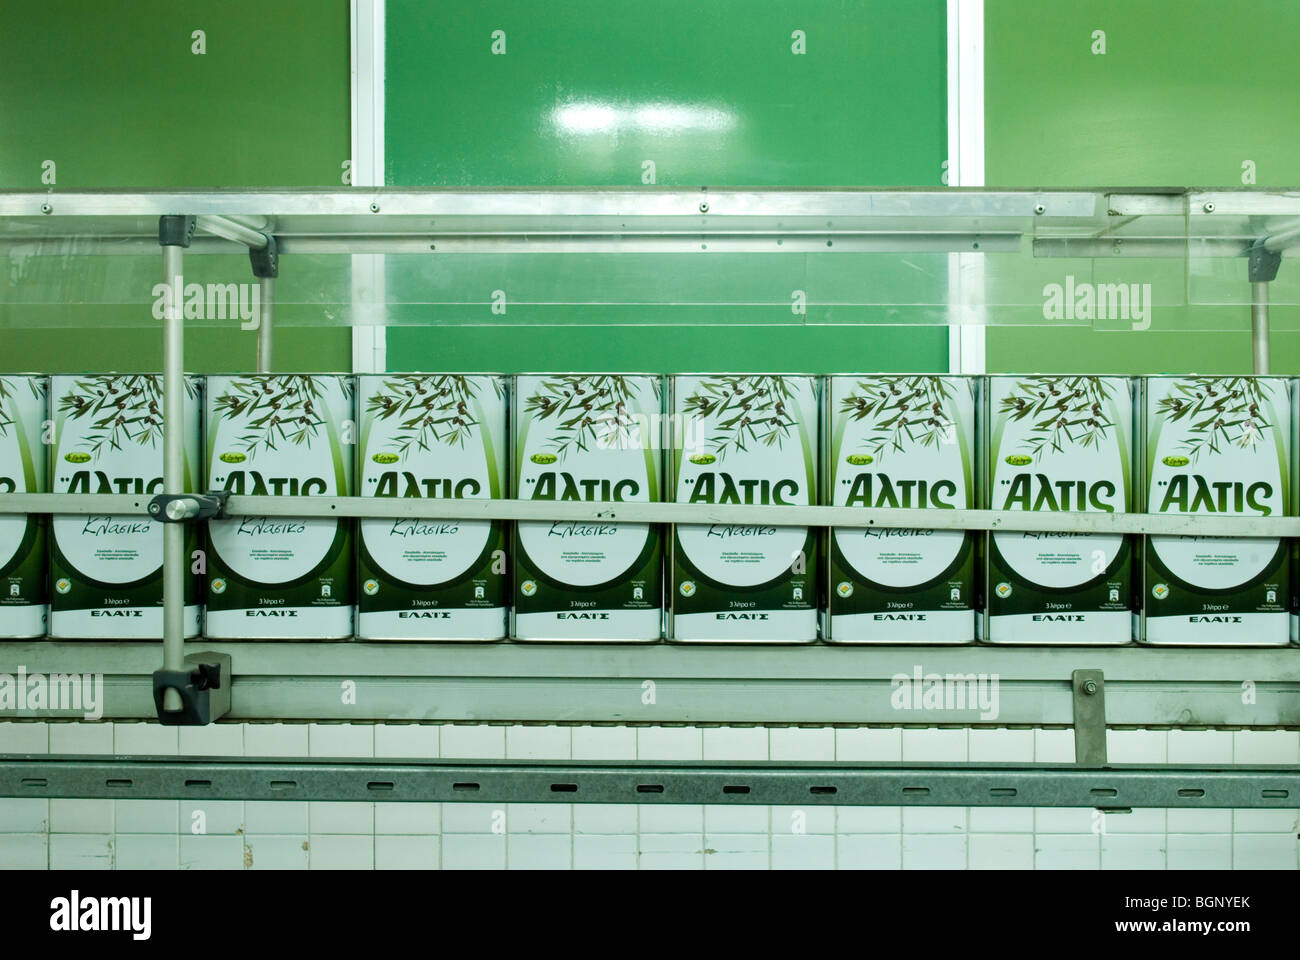 the production line of Elais olive oil processing plant - Stock Image